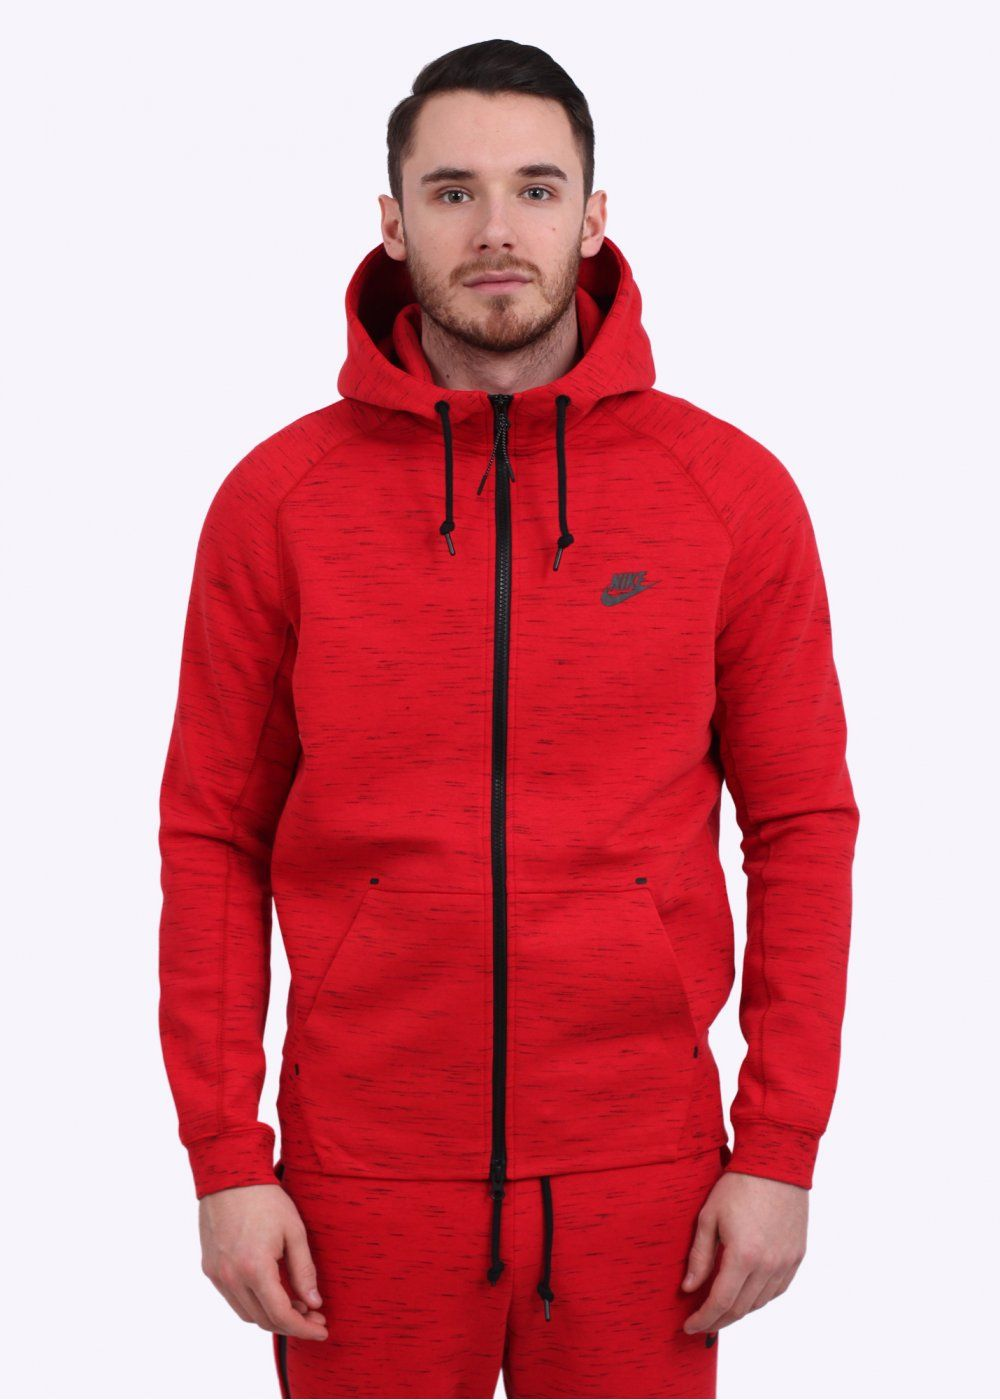 f20dcd5229ad nike sweatshirts mens red online   OFF60% Discounts